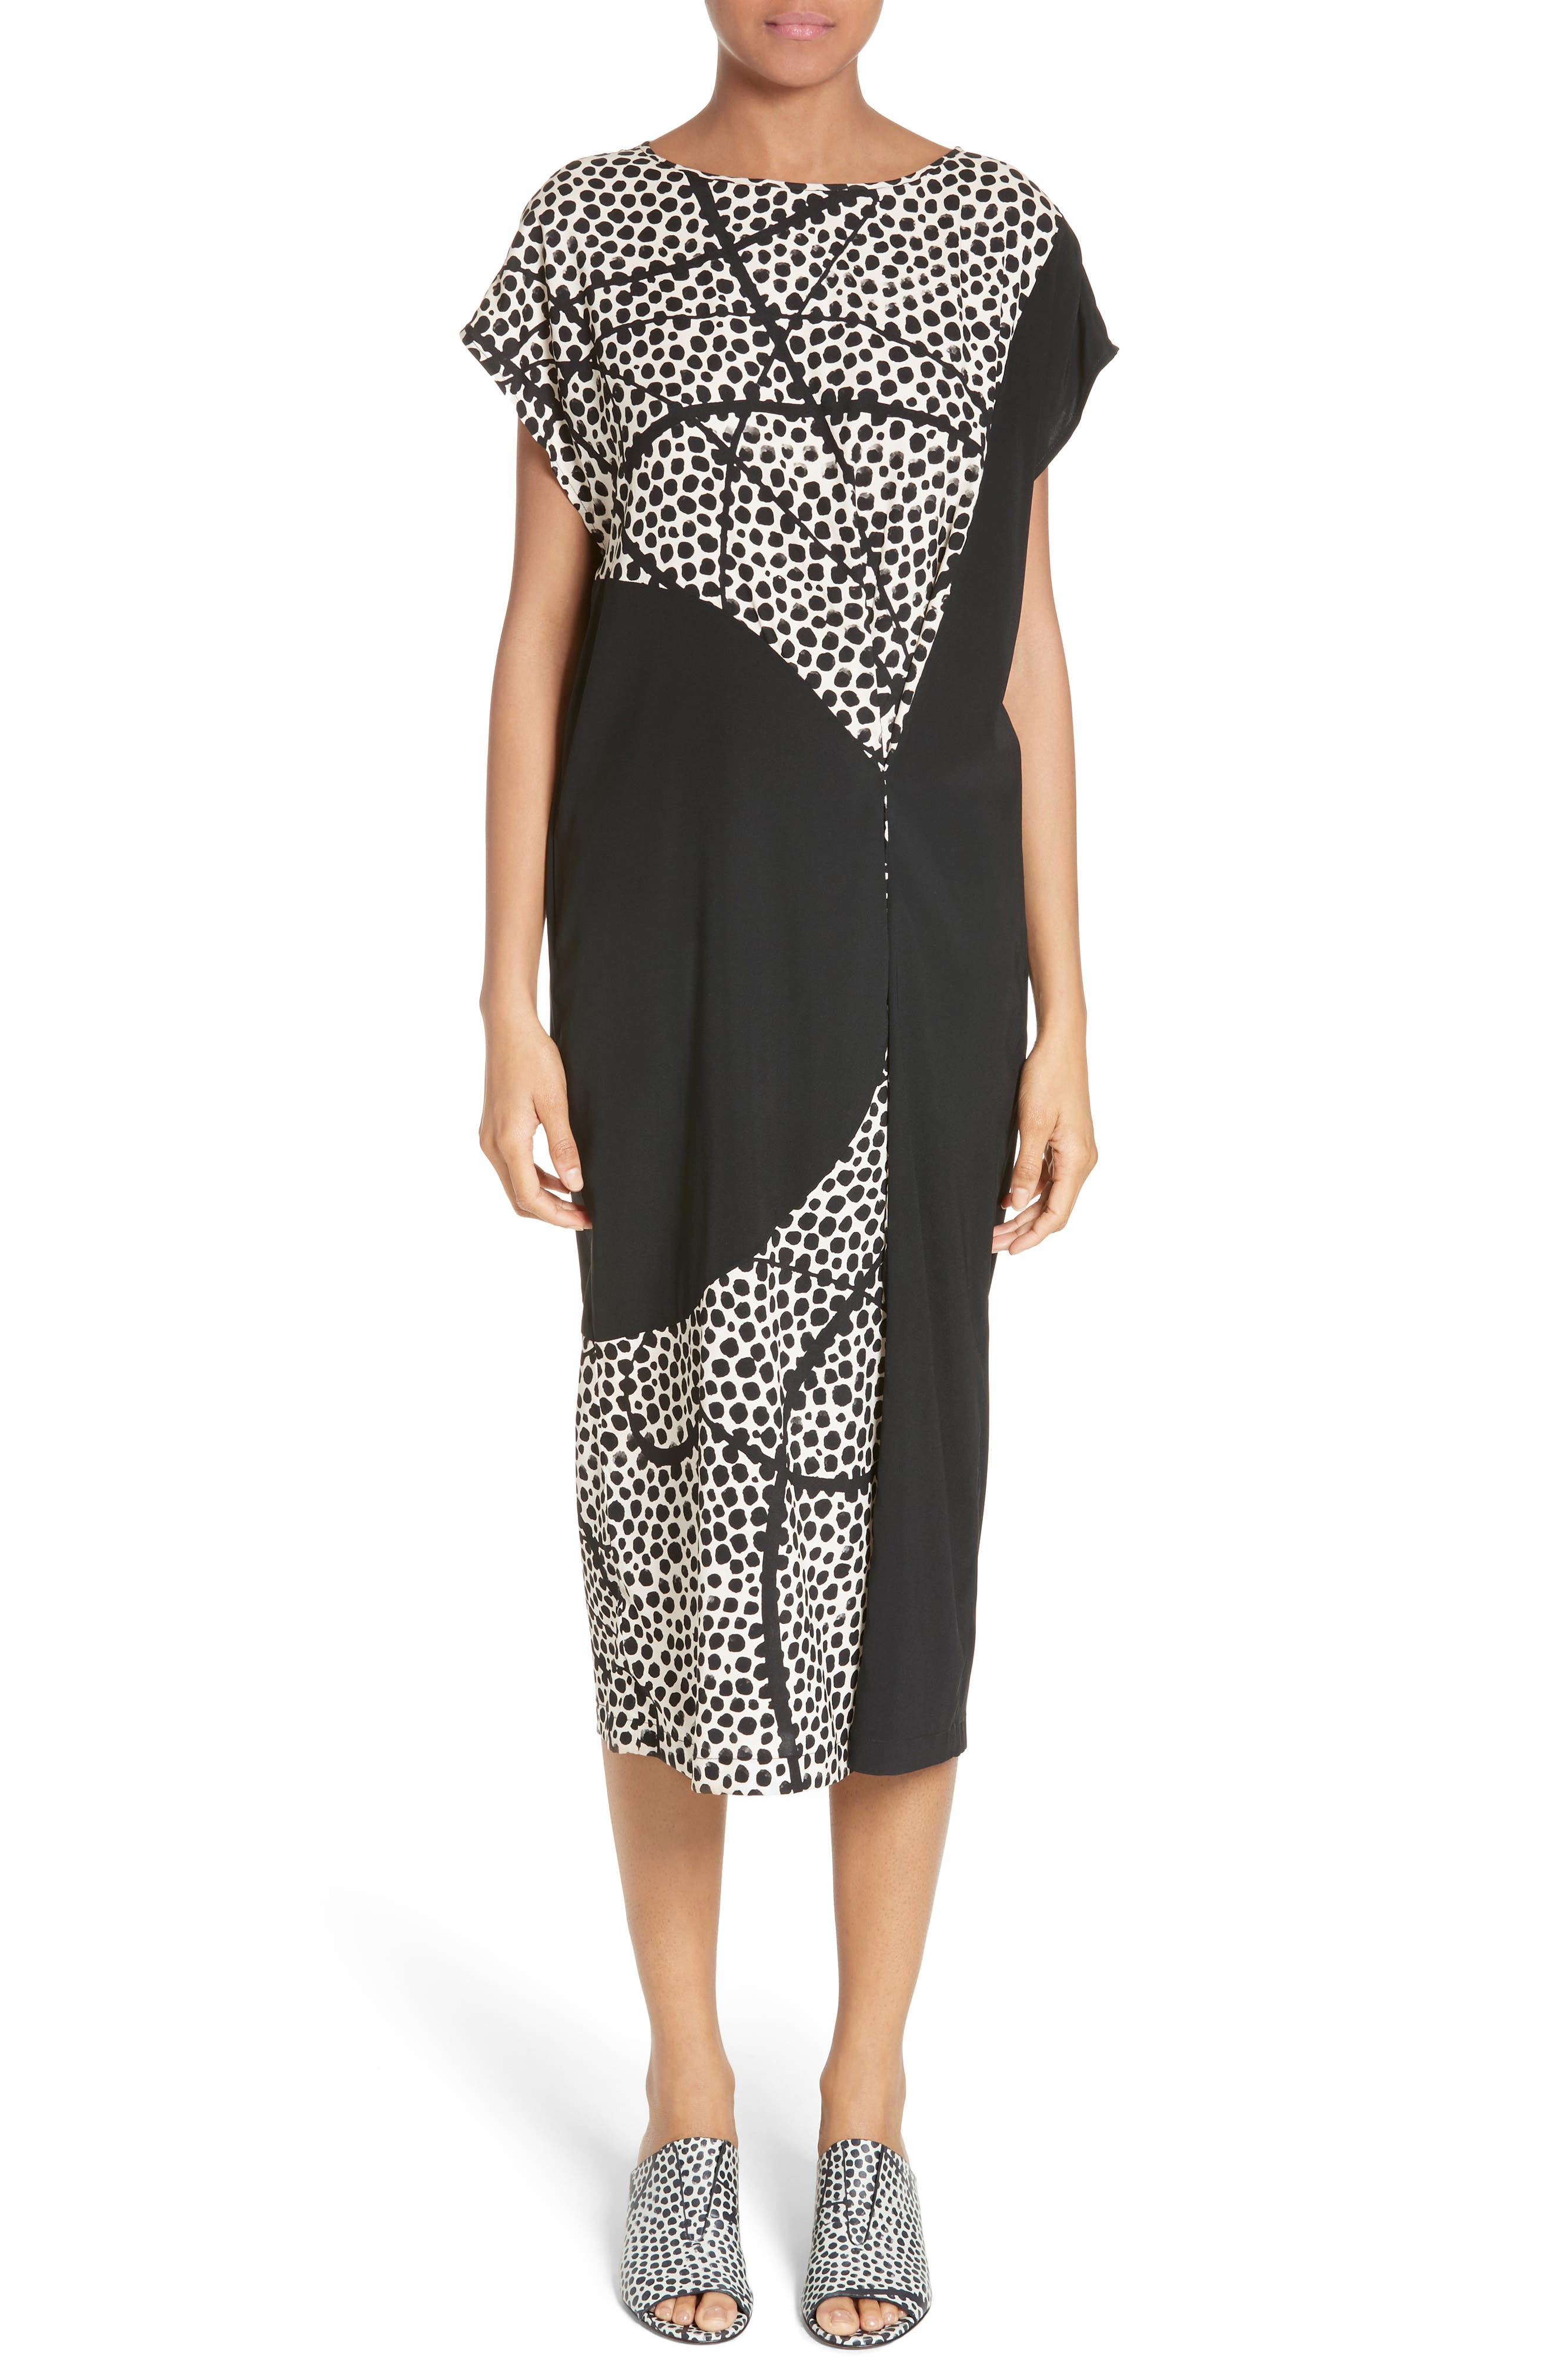 Zero + Maria Cornejo Yira Elliott Dot Stretch Silk Dress